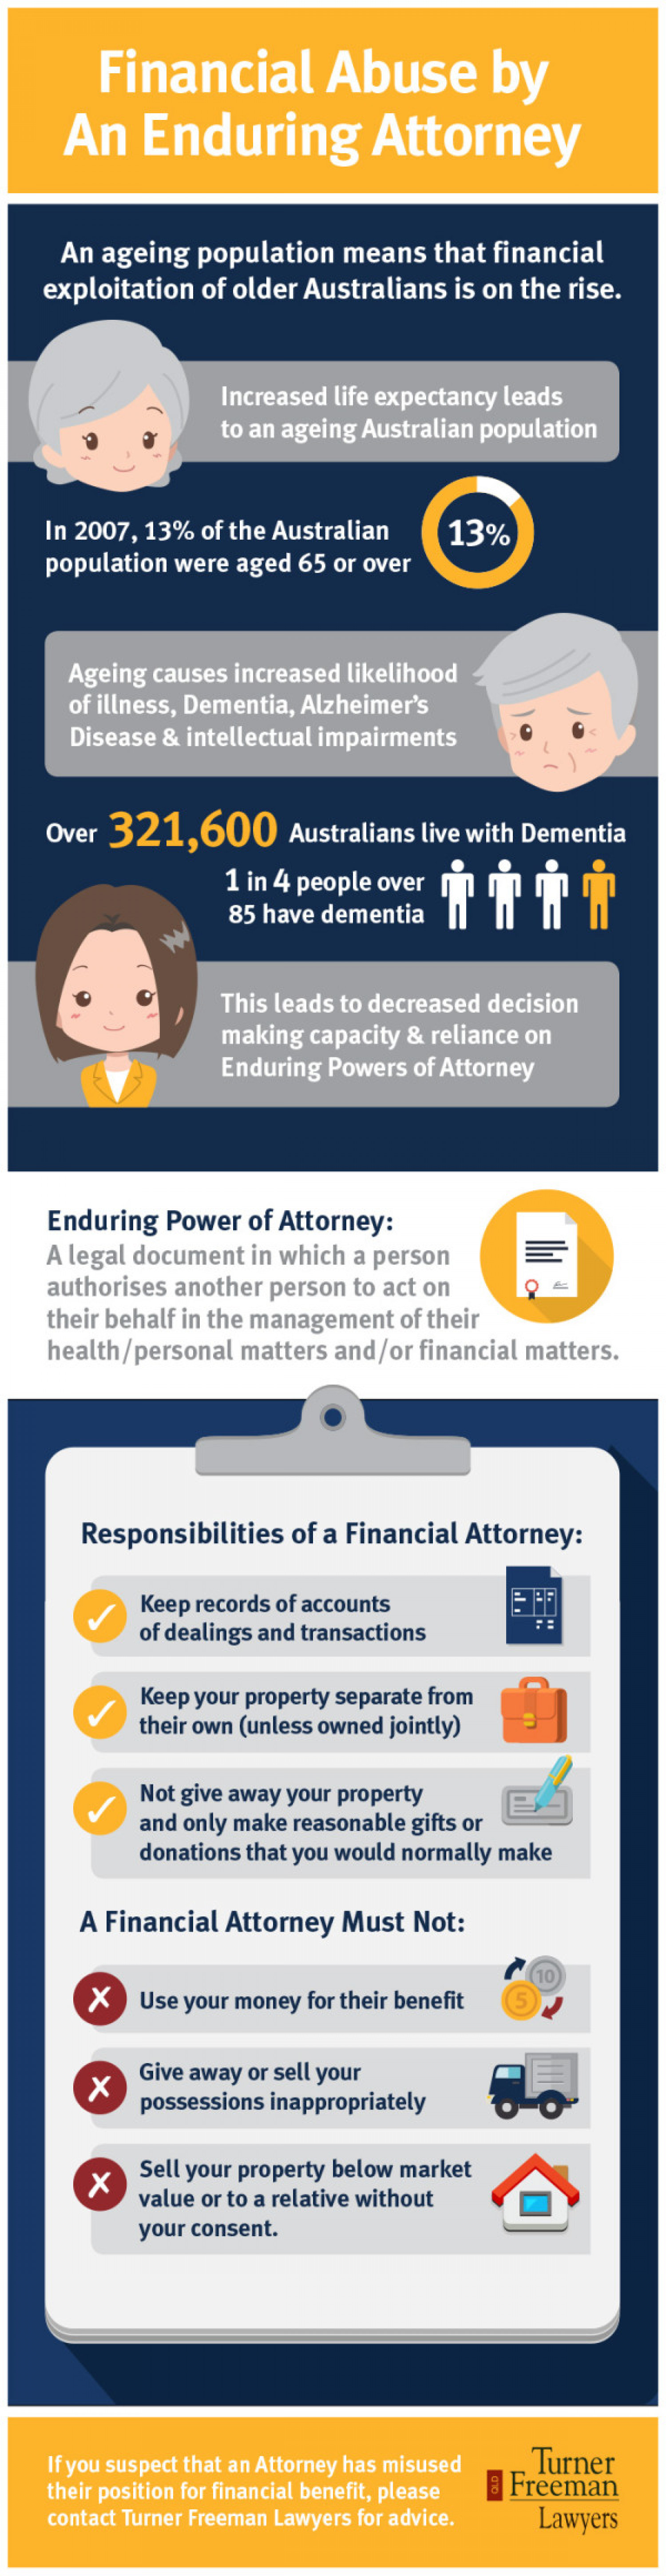 Financial Abuse by an Enduring Attorney Infographic